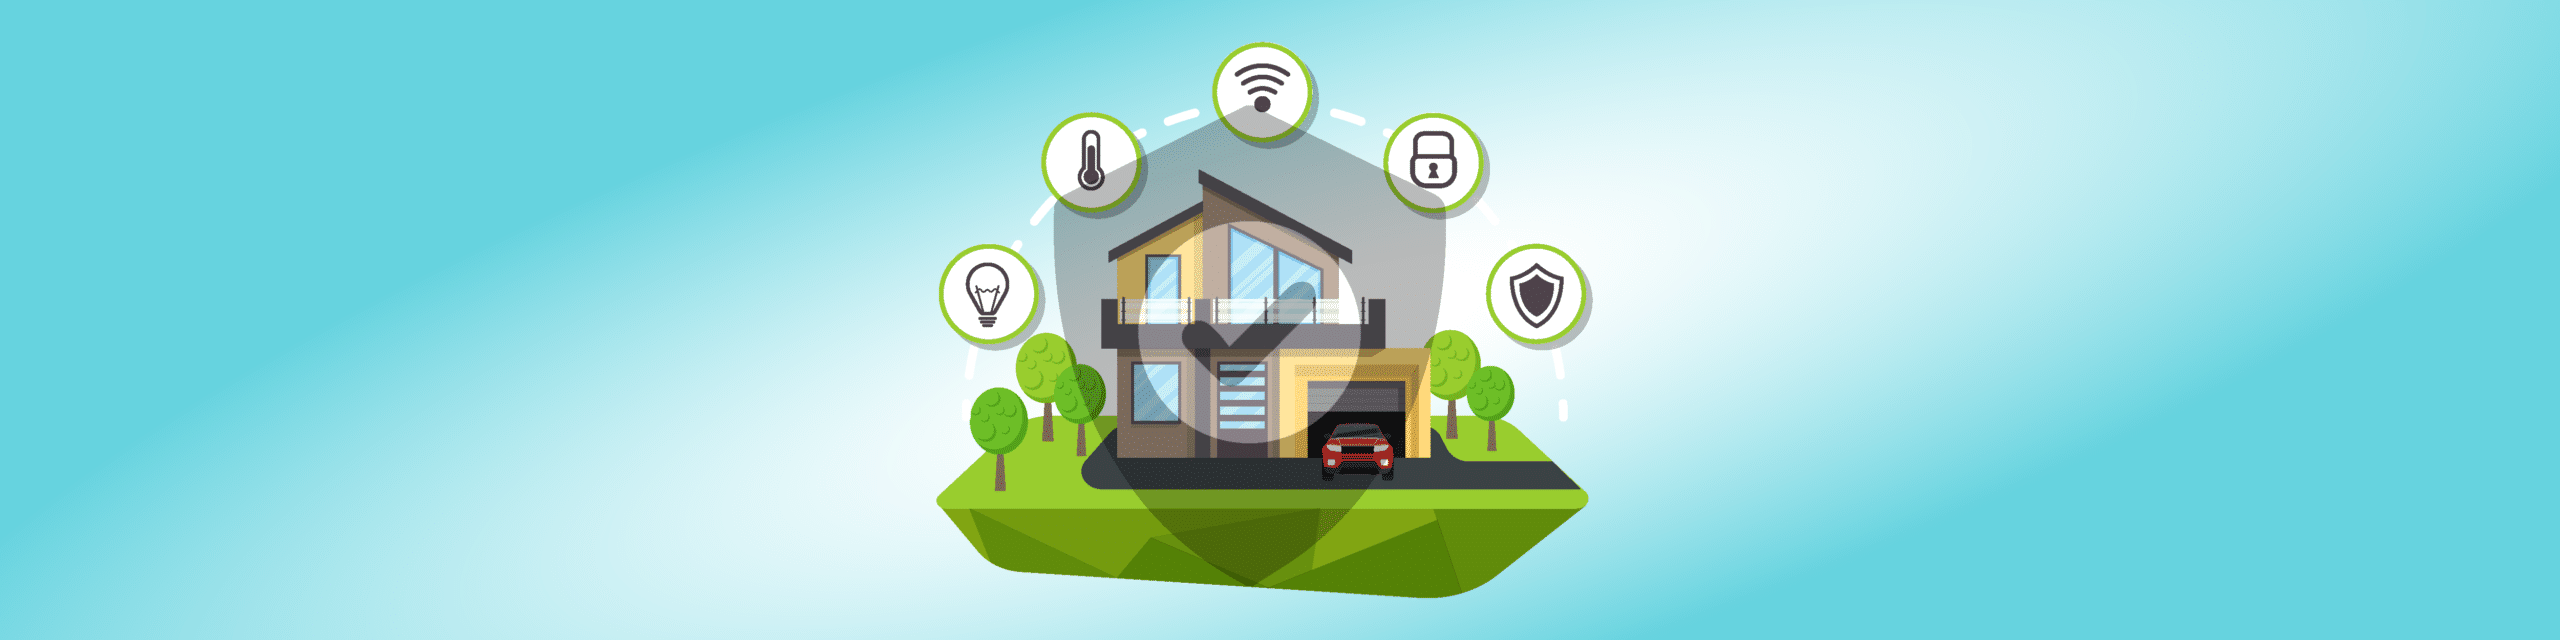 How to secure your smart home gadgets